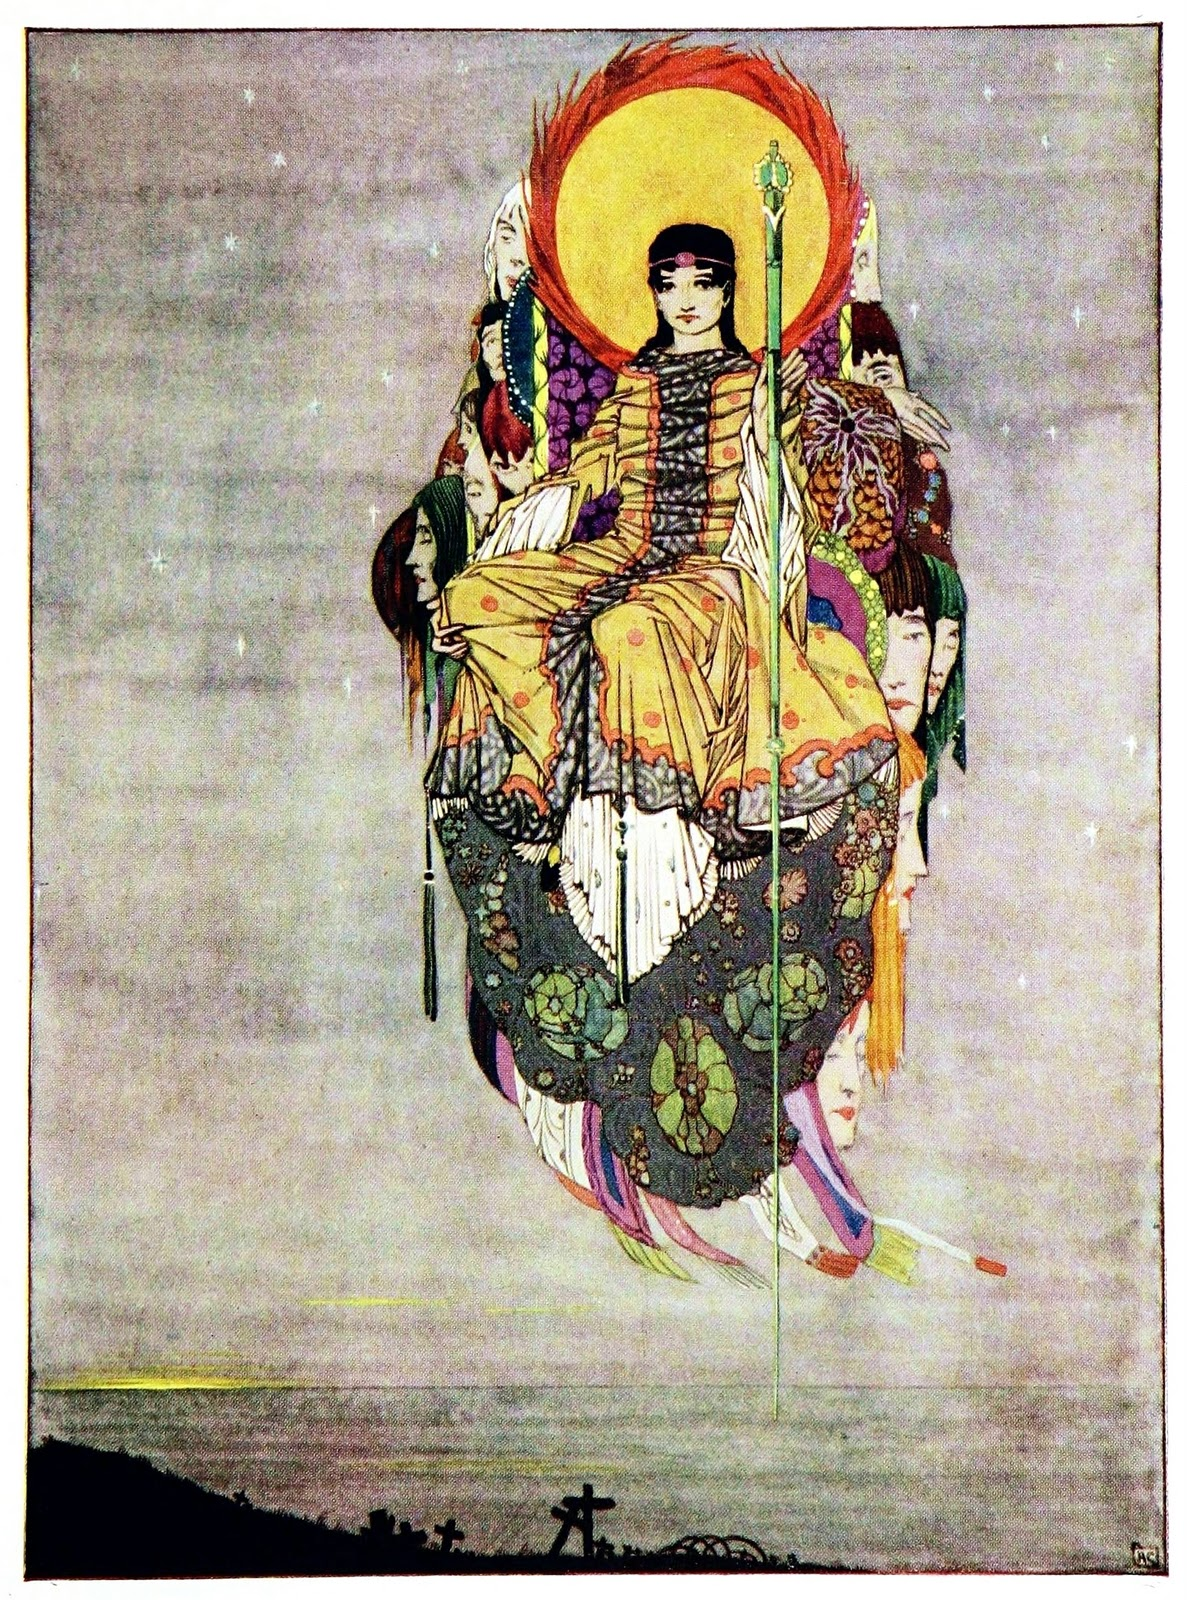 The Year S Of Living Non: Art Of Narrative: Harry Clarke: The Year's At The Spring